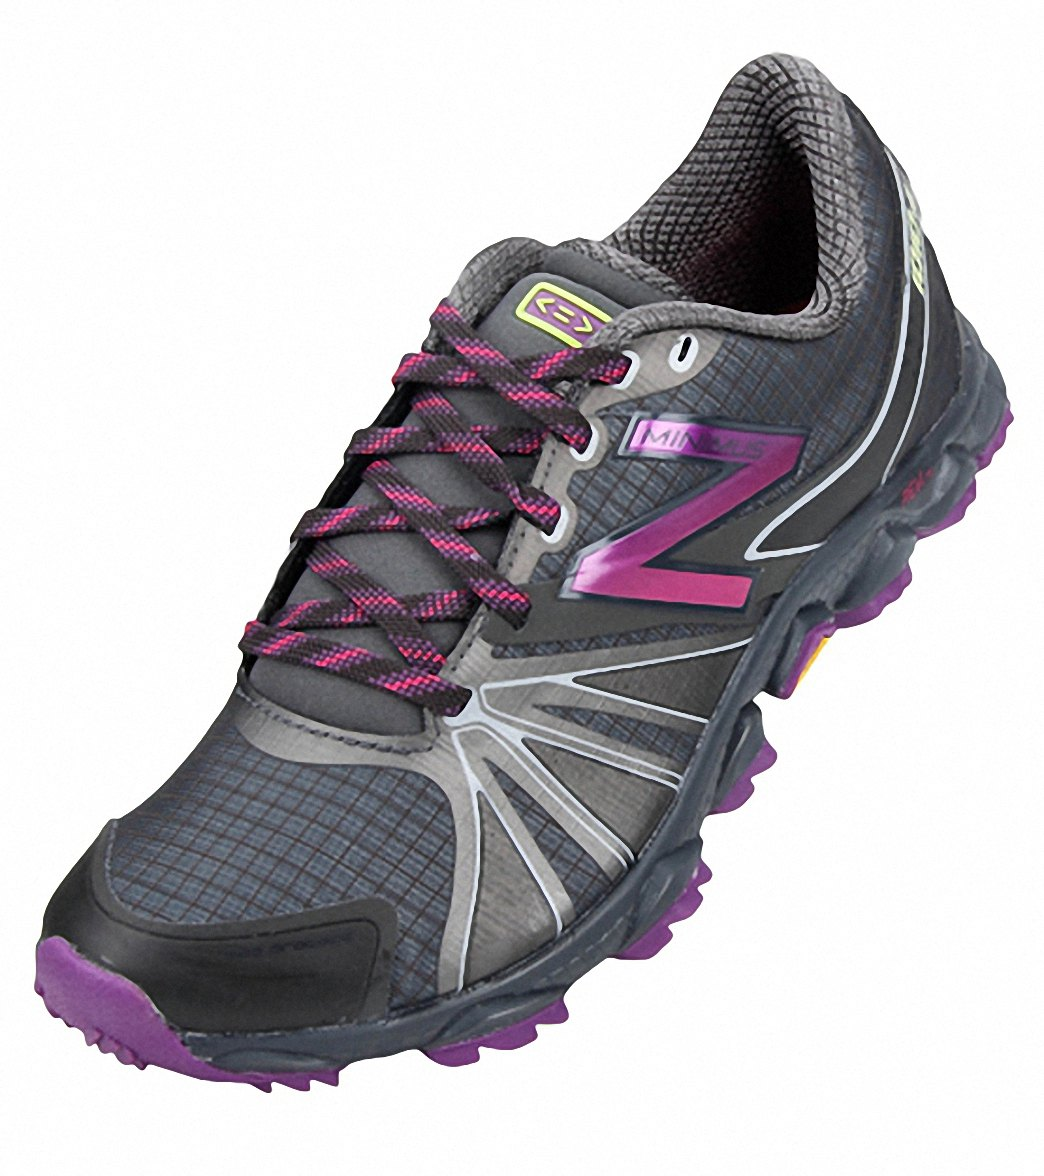 f37a3a1dc591 New Balance Women s 1010v2 Minimus Trail Running Shoes at SwimOutlet.com -  Free Shipping